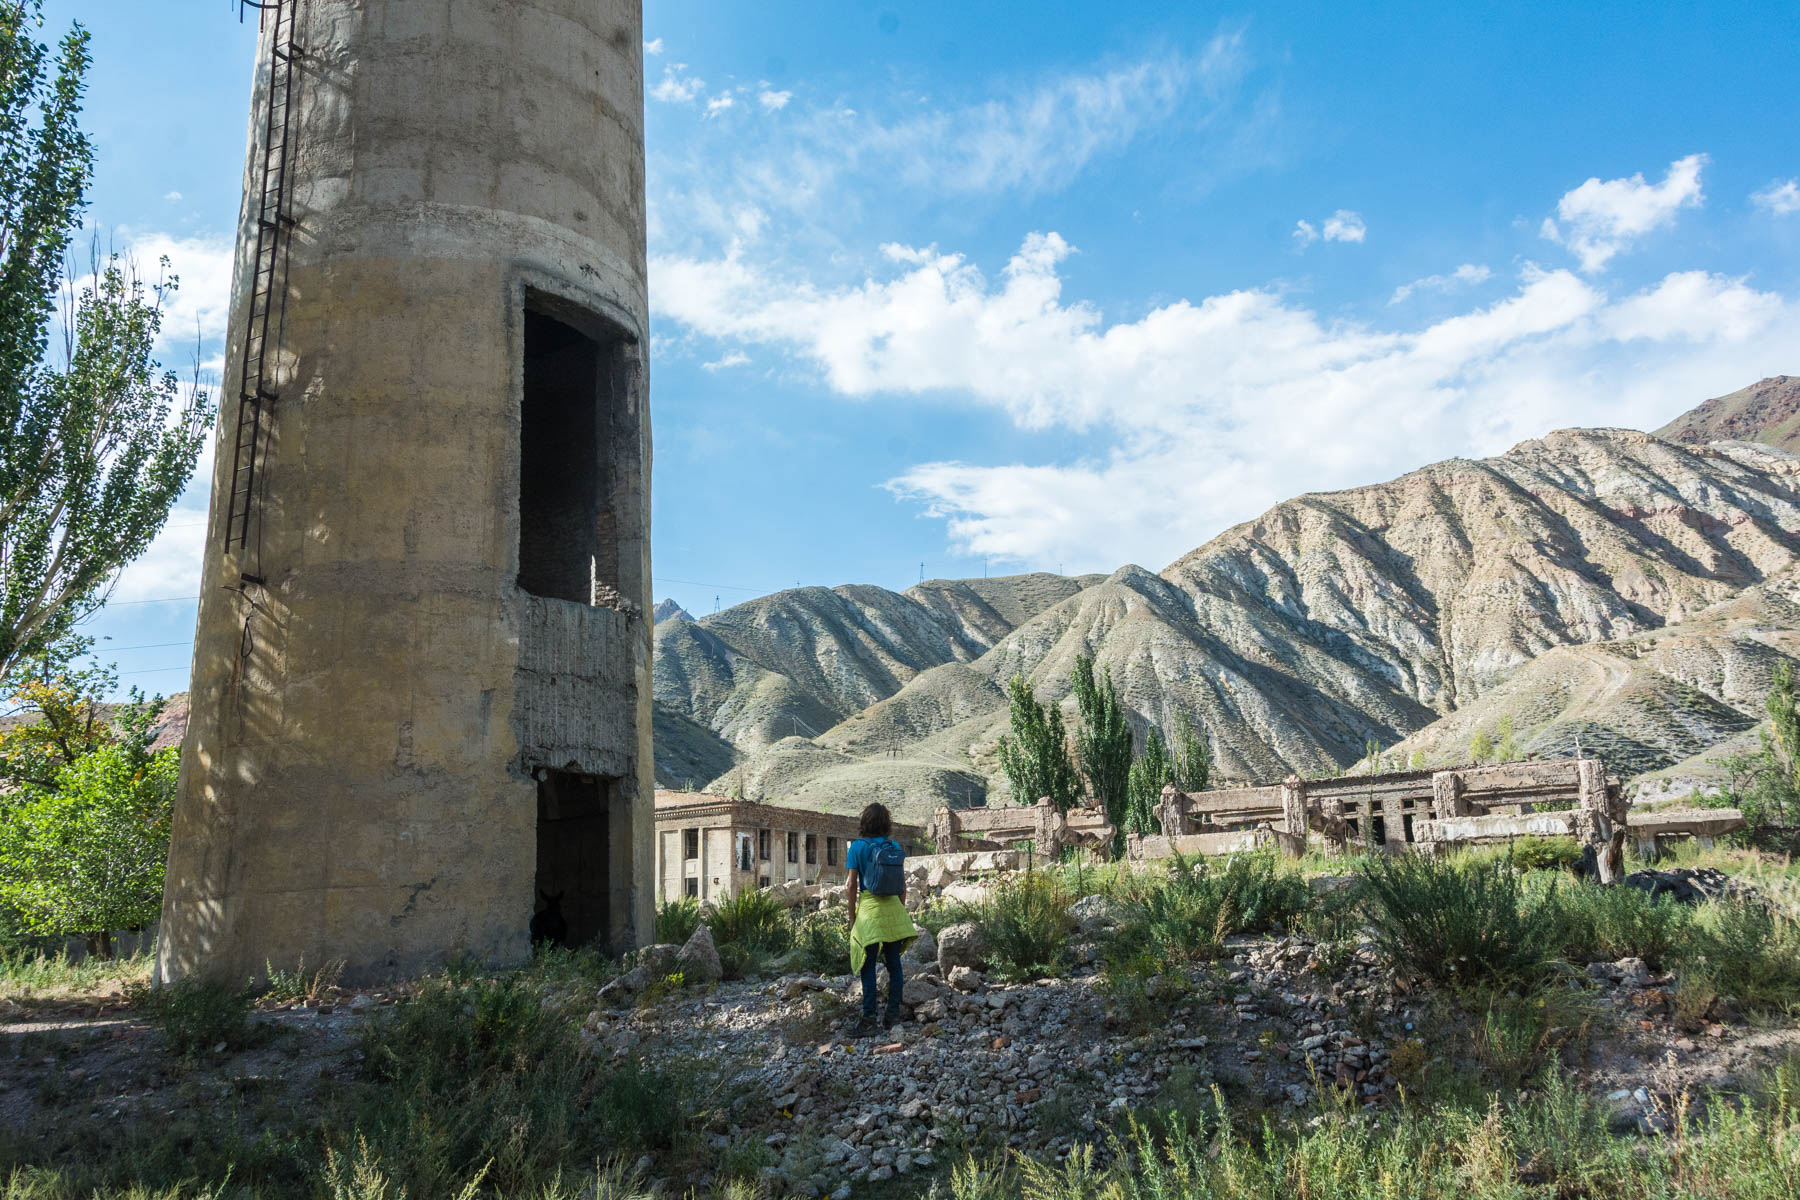 Abandoned Soviet factories and towers in Min Kush, Kyrgyzstan - Lost With Purpose